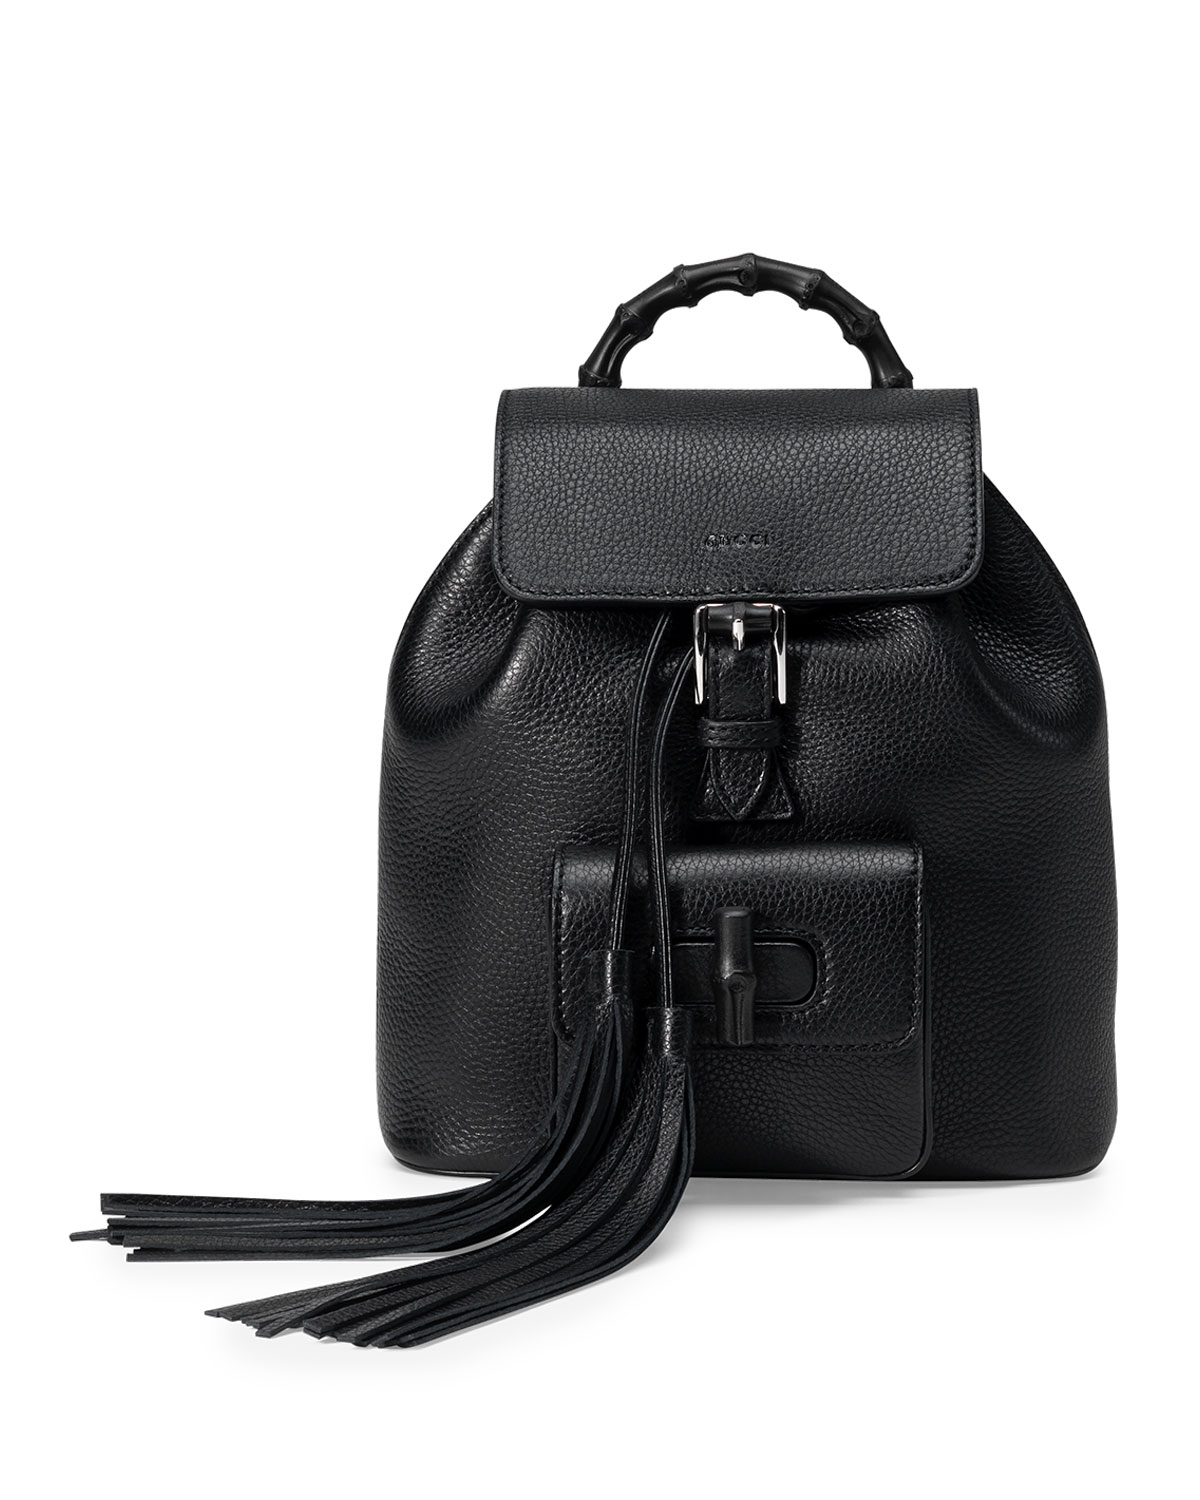 7b740ba283a854 Gucci Bamboo Small Leather Backpack, Black | Neiman Marcus